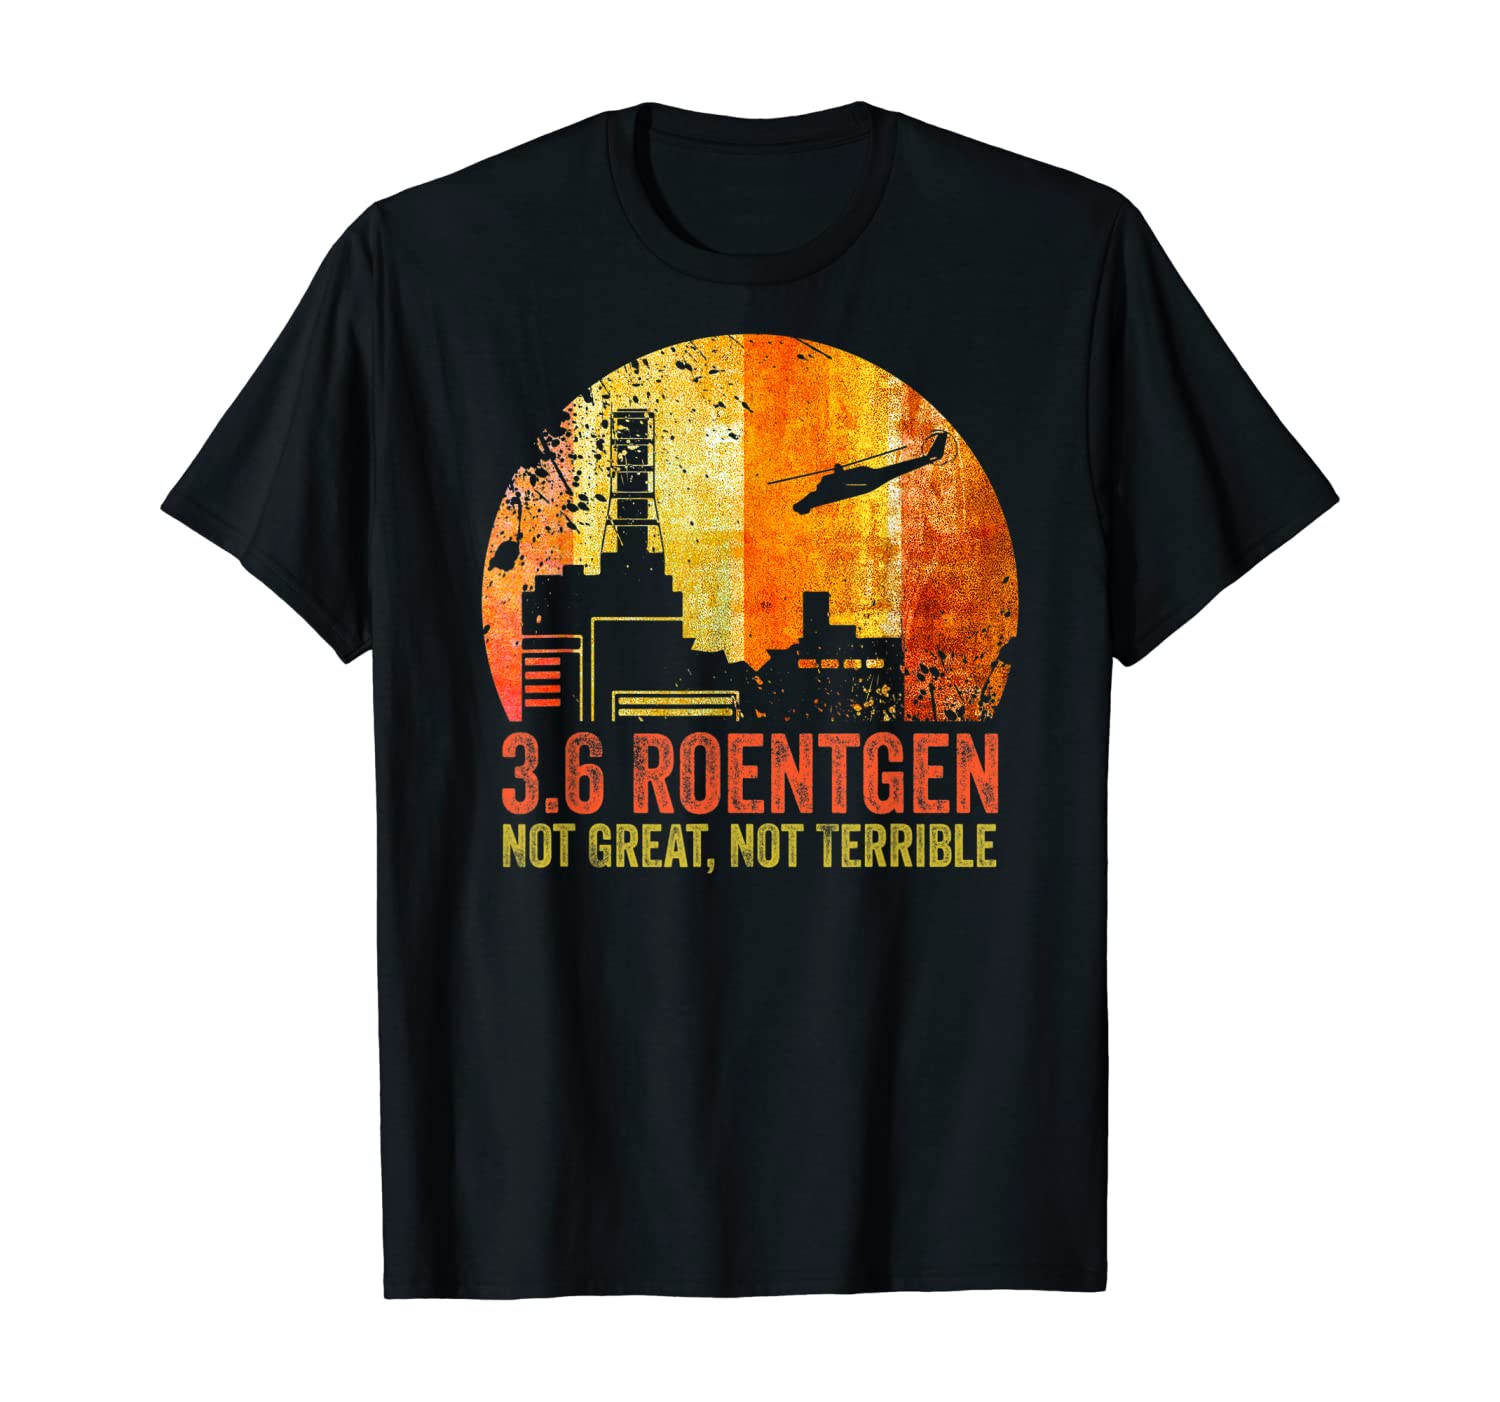 3.6 Roentgen Not Great, Not Terrible Chernobyl Vintage Gift T-Shirt